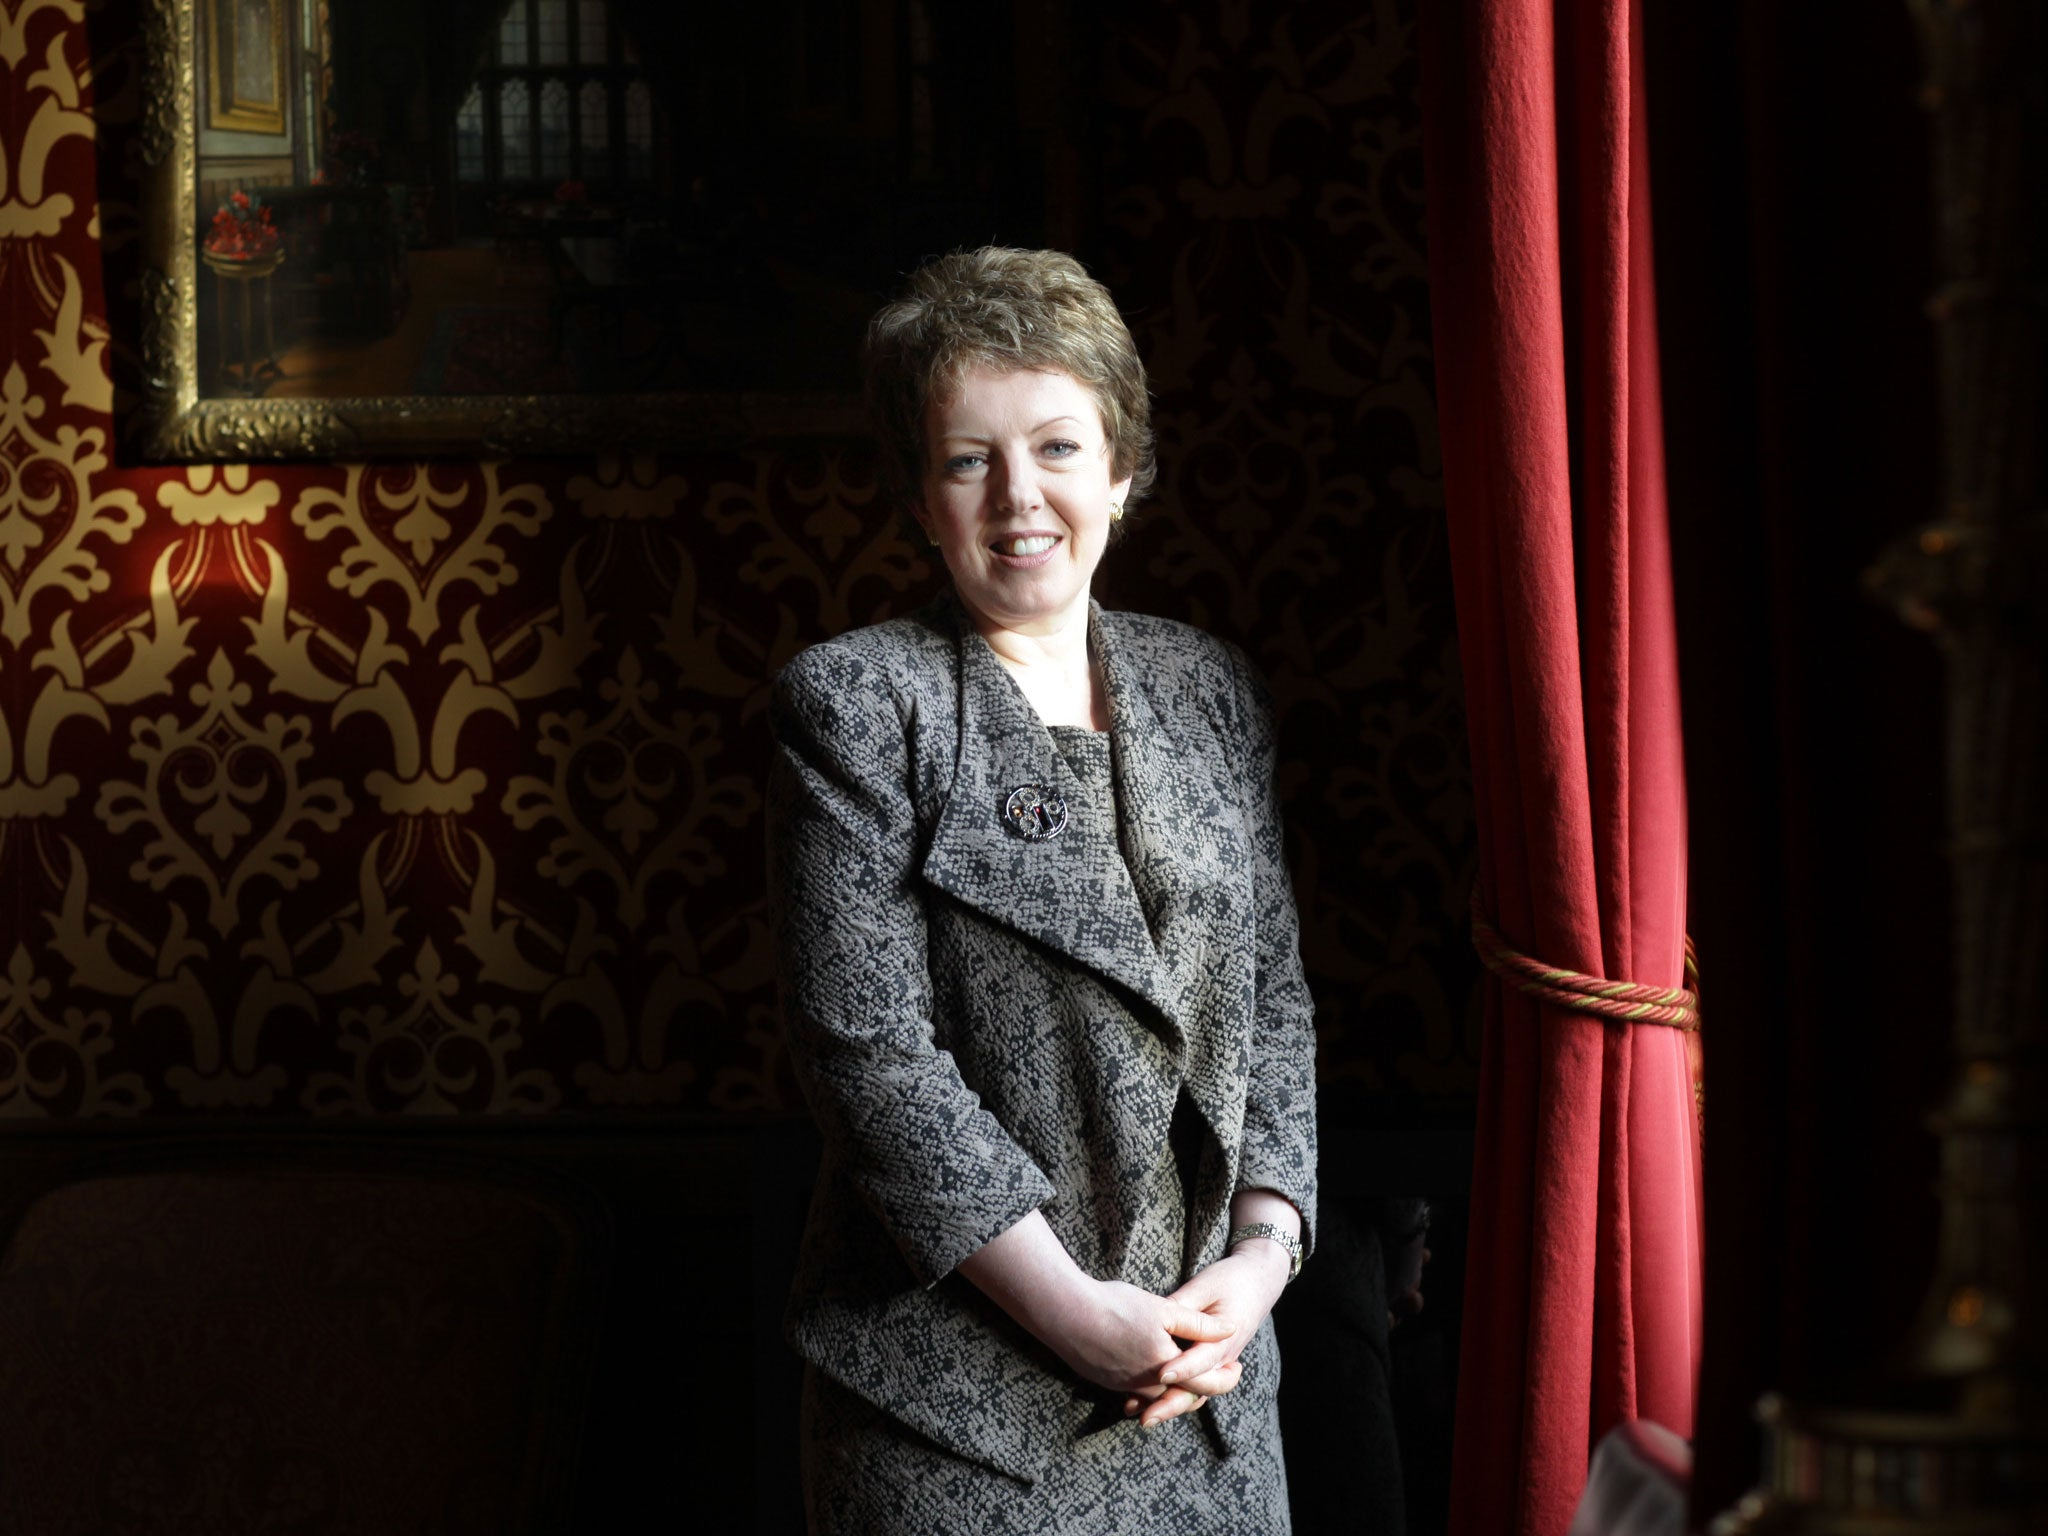 Baroness Tina Stowell Is The Beyoncé Of The House Of Lords Baroness Tina Stowell Is The Beyoncé Of The House Of Lords new images